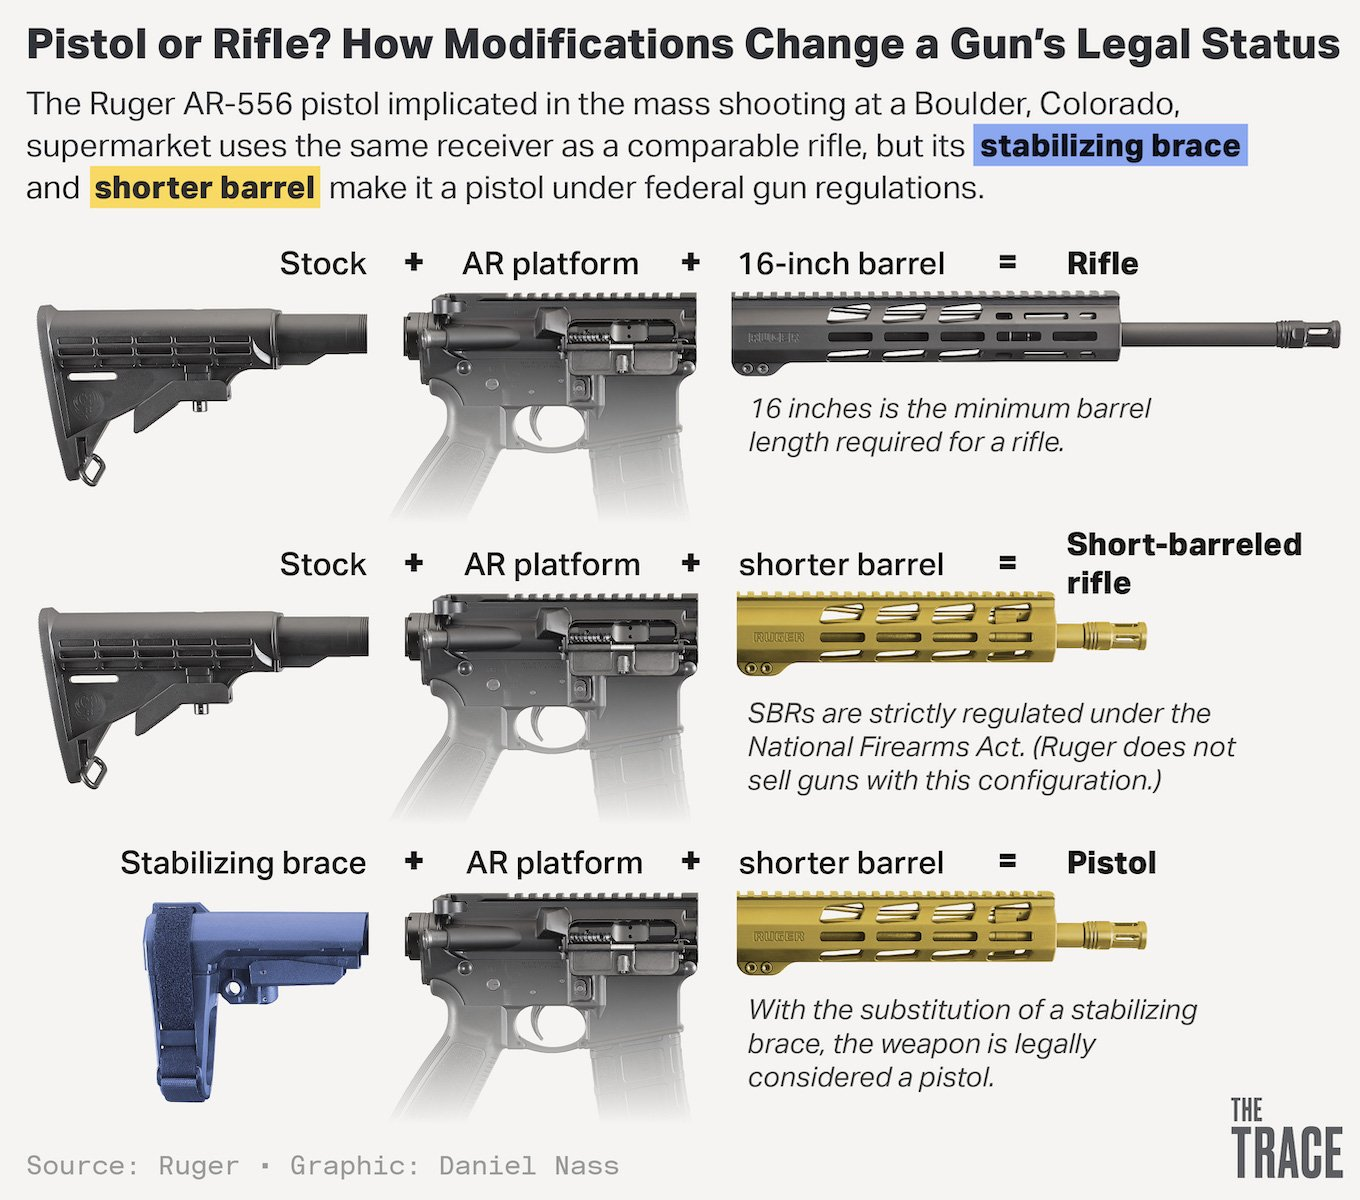 Graphic showing different AR configurations, illustrating how a the addition of a stabilizing brace makes the difference between a short-barreled rifle and a pistol for federal regulators.